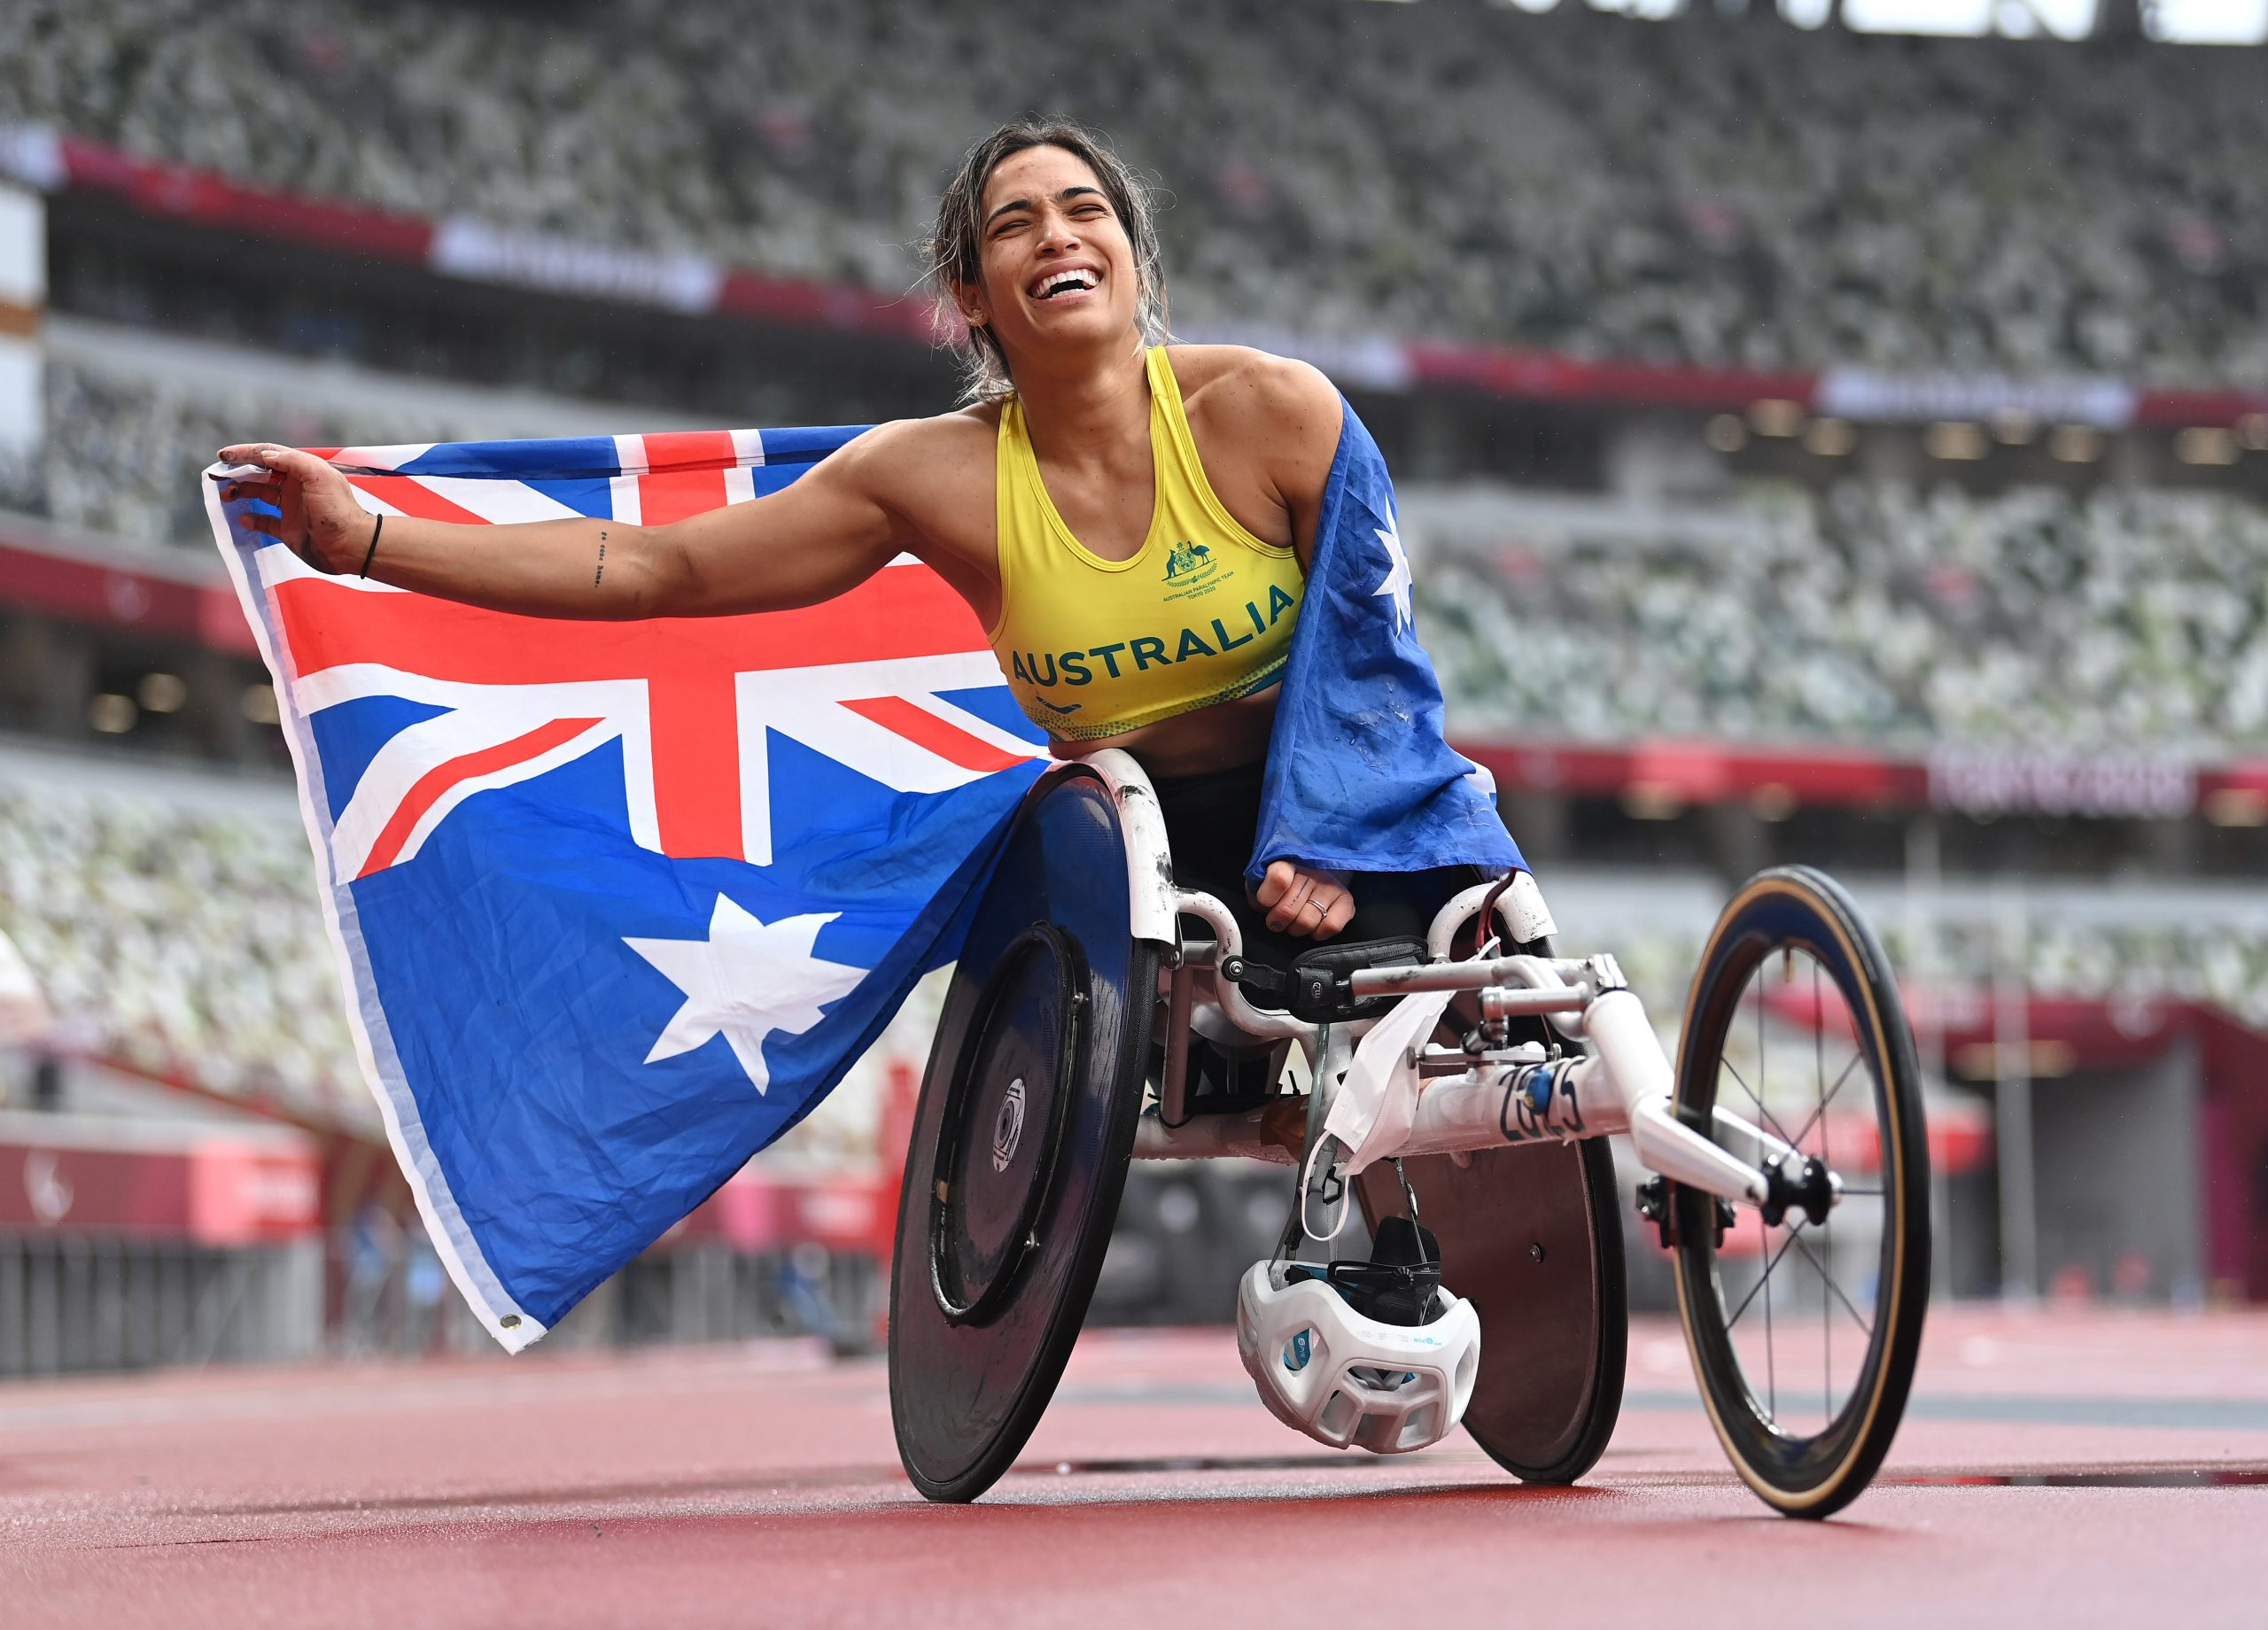 Relive the Games with our Campaign Tokyo Paralympic Highlights Image